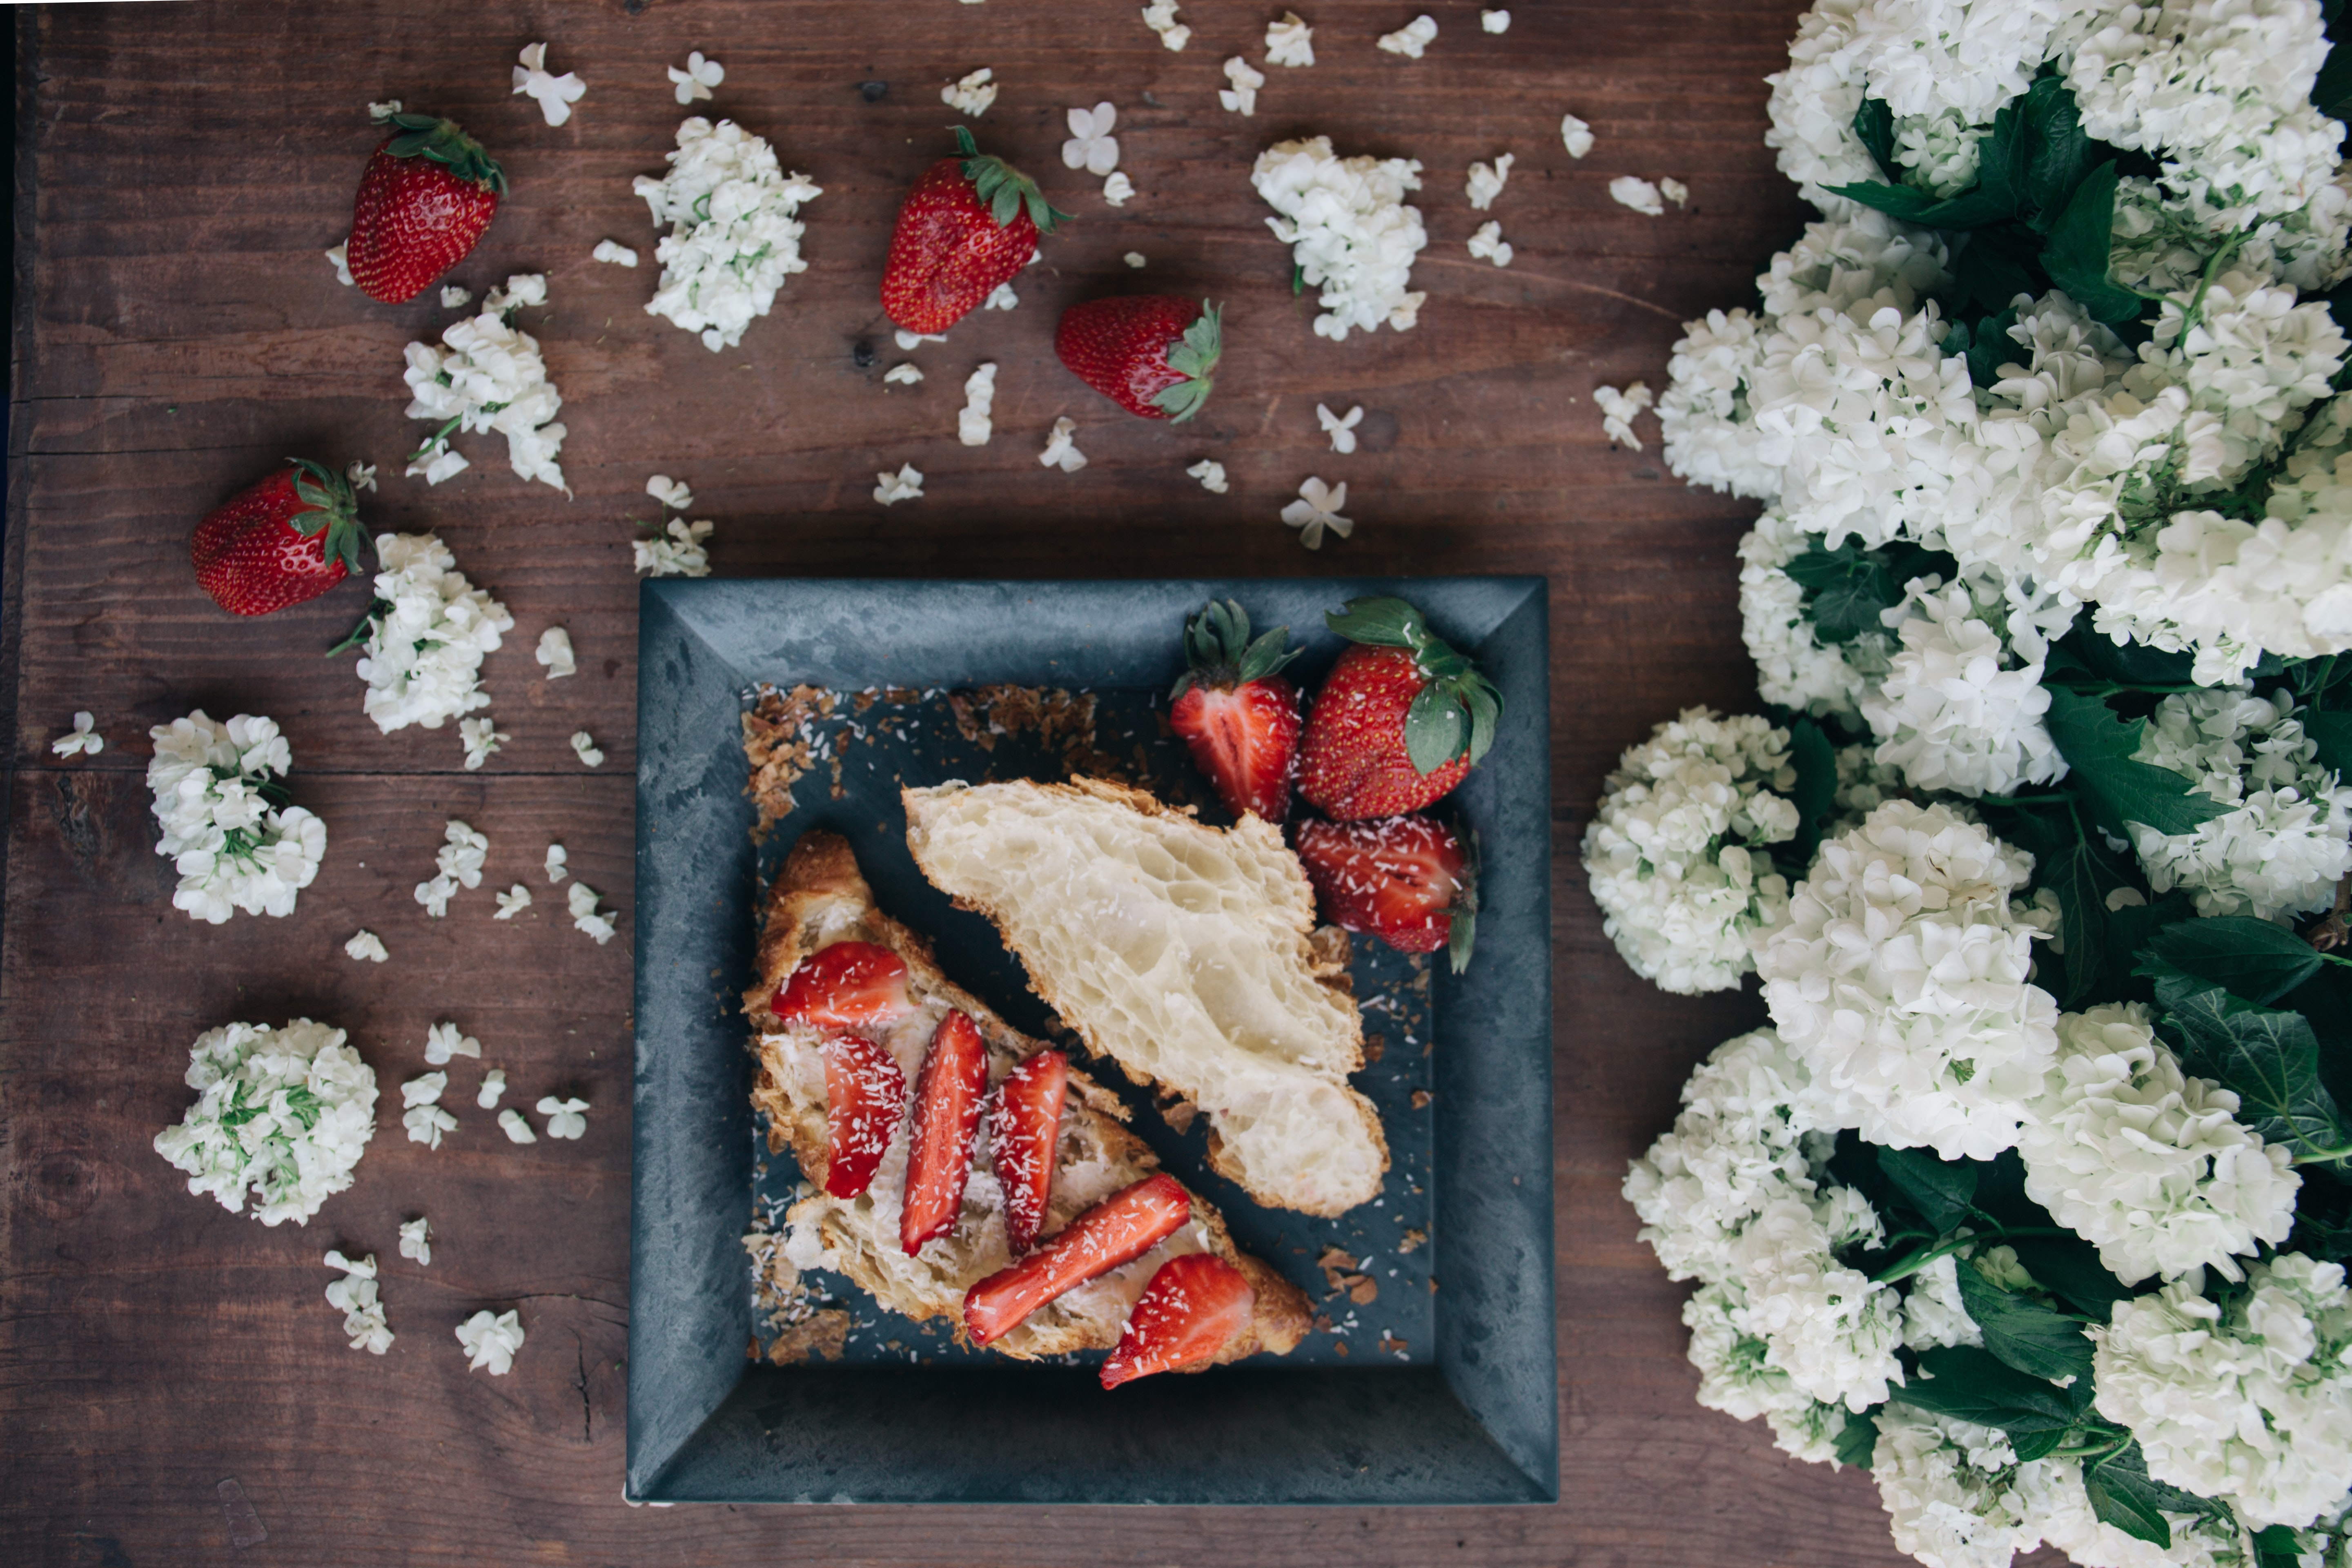 Croissant with powdered sugar and strawberries surrounded by flowers